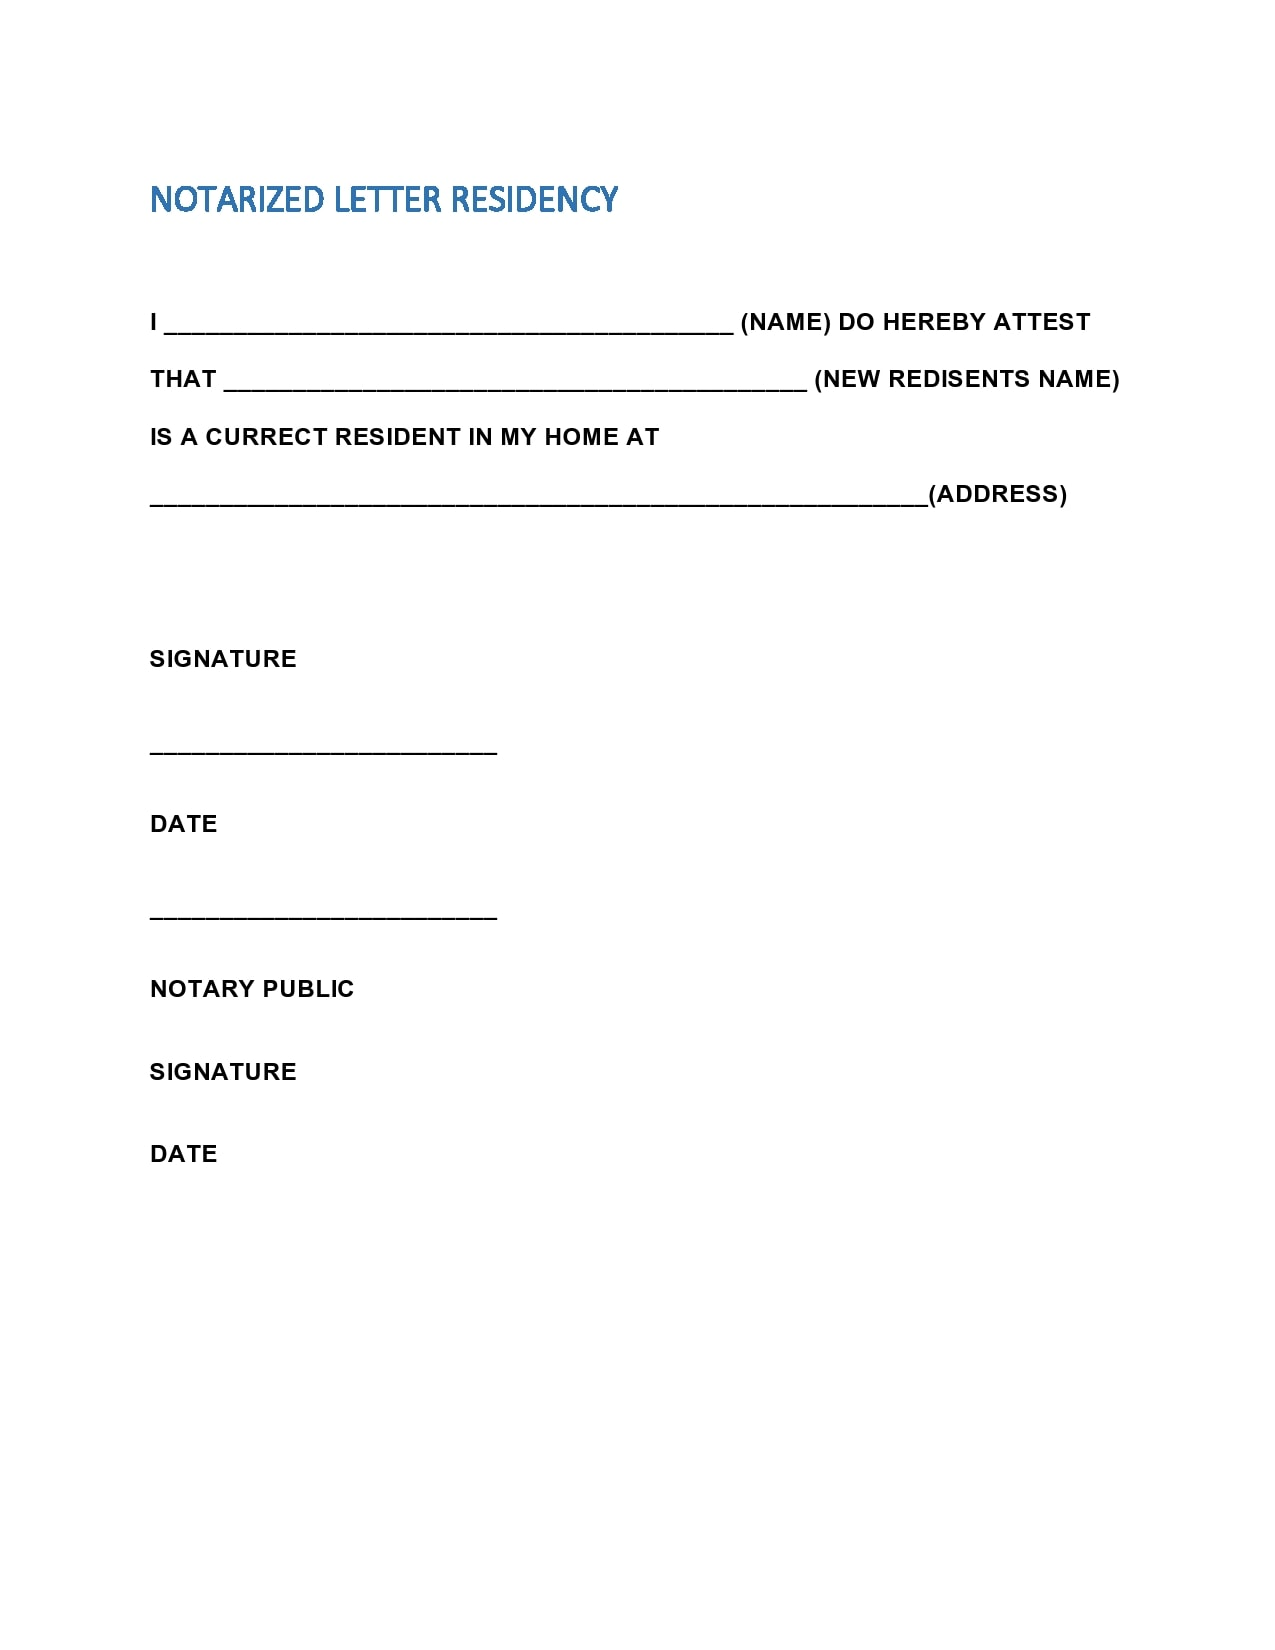 notarized letter 08